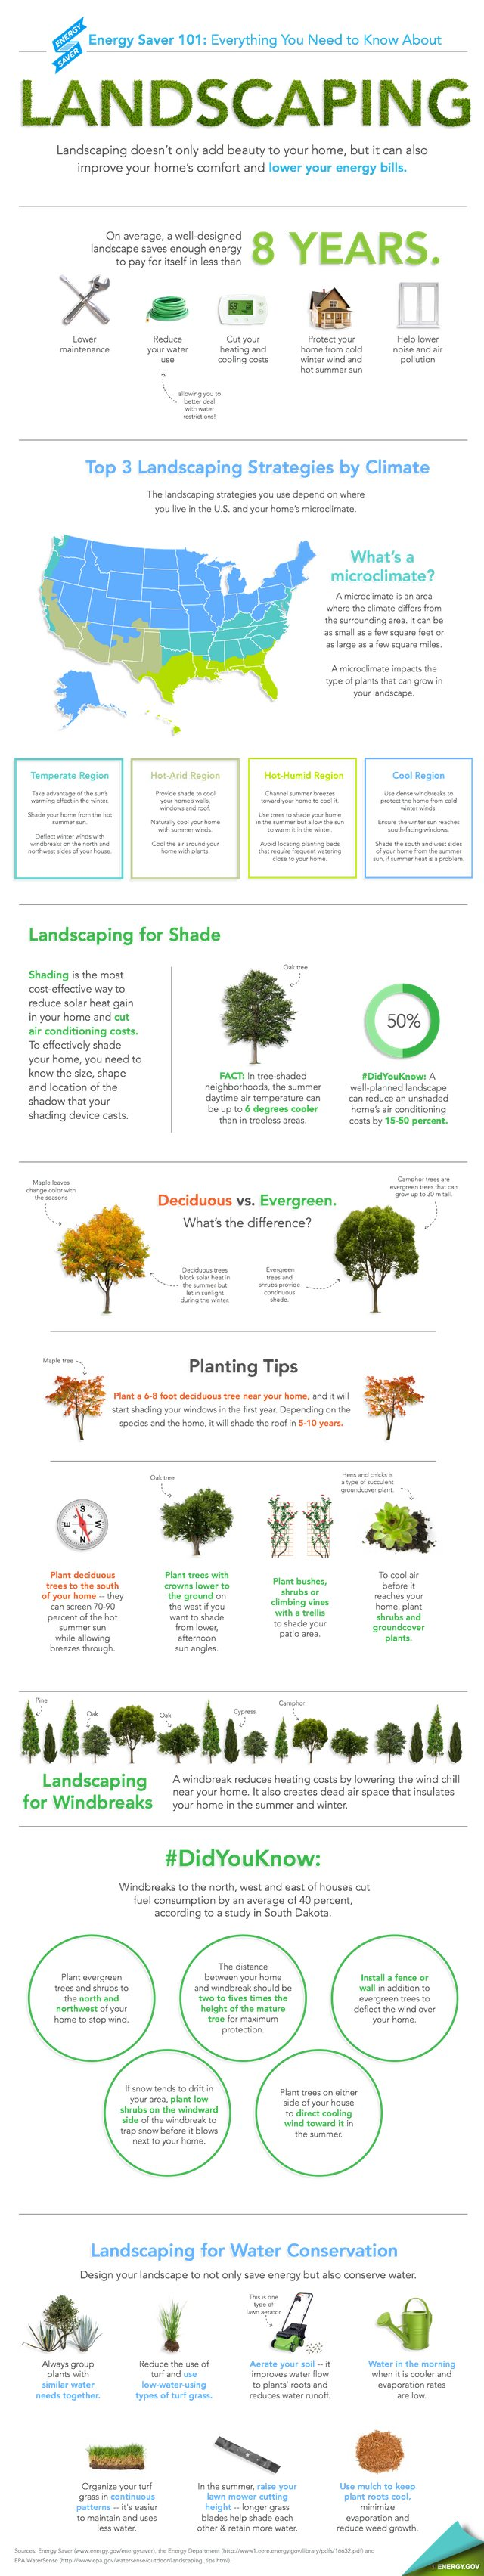 Energy Saving Landscaping Tips [Infographic]